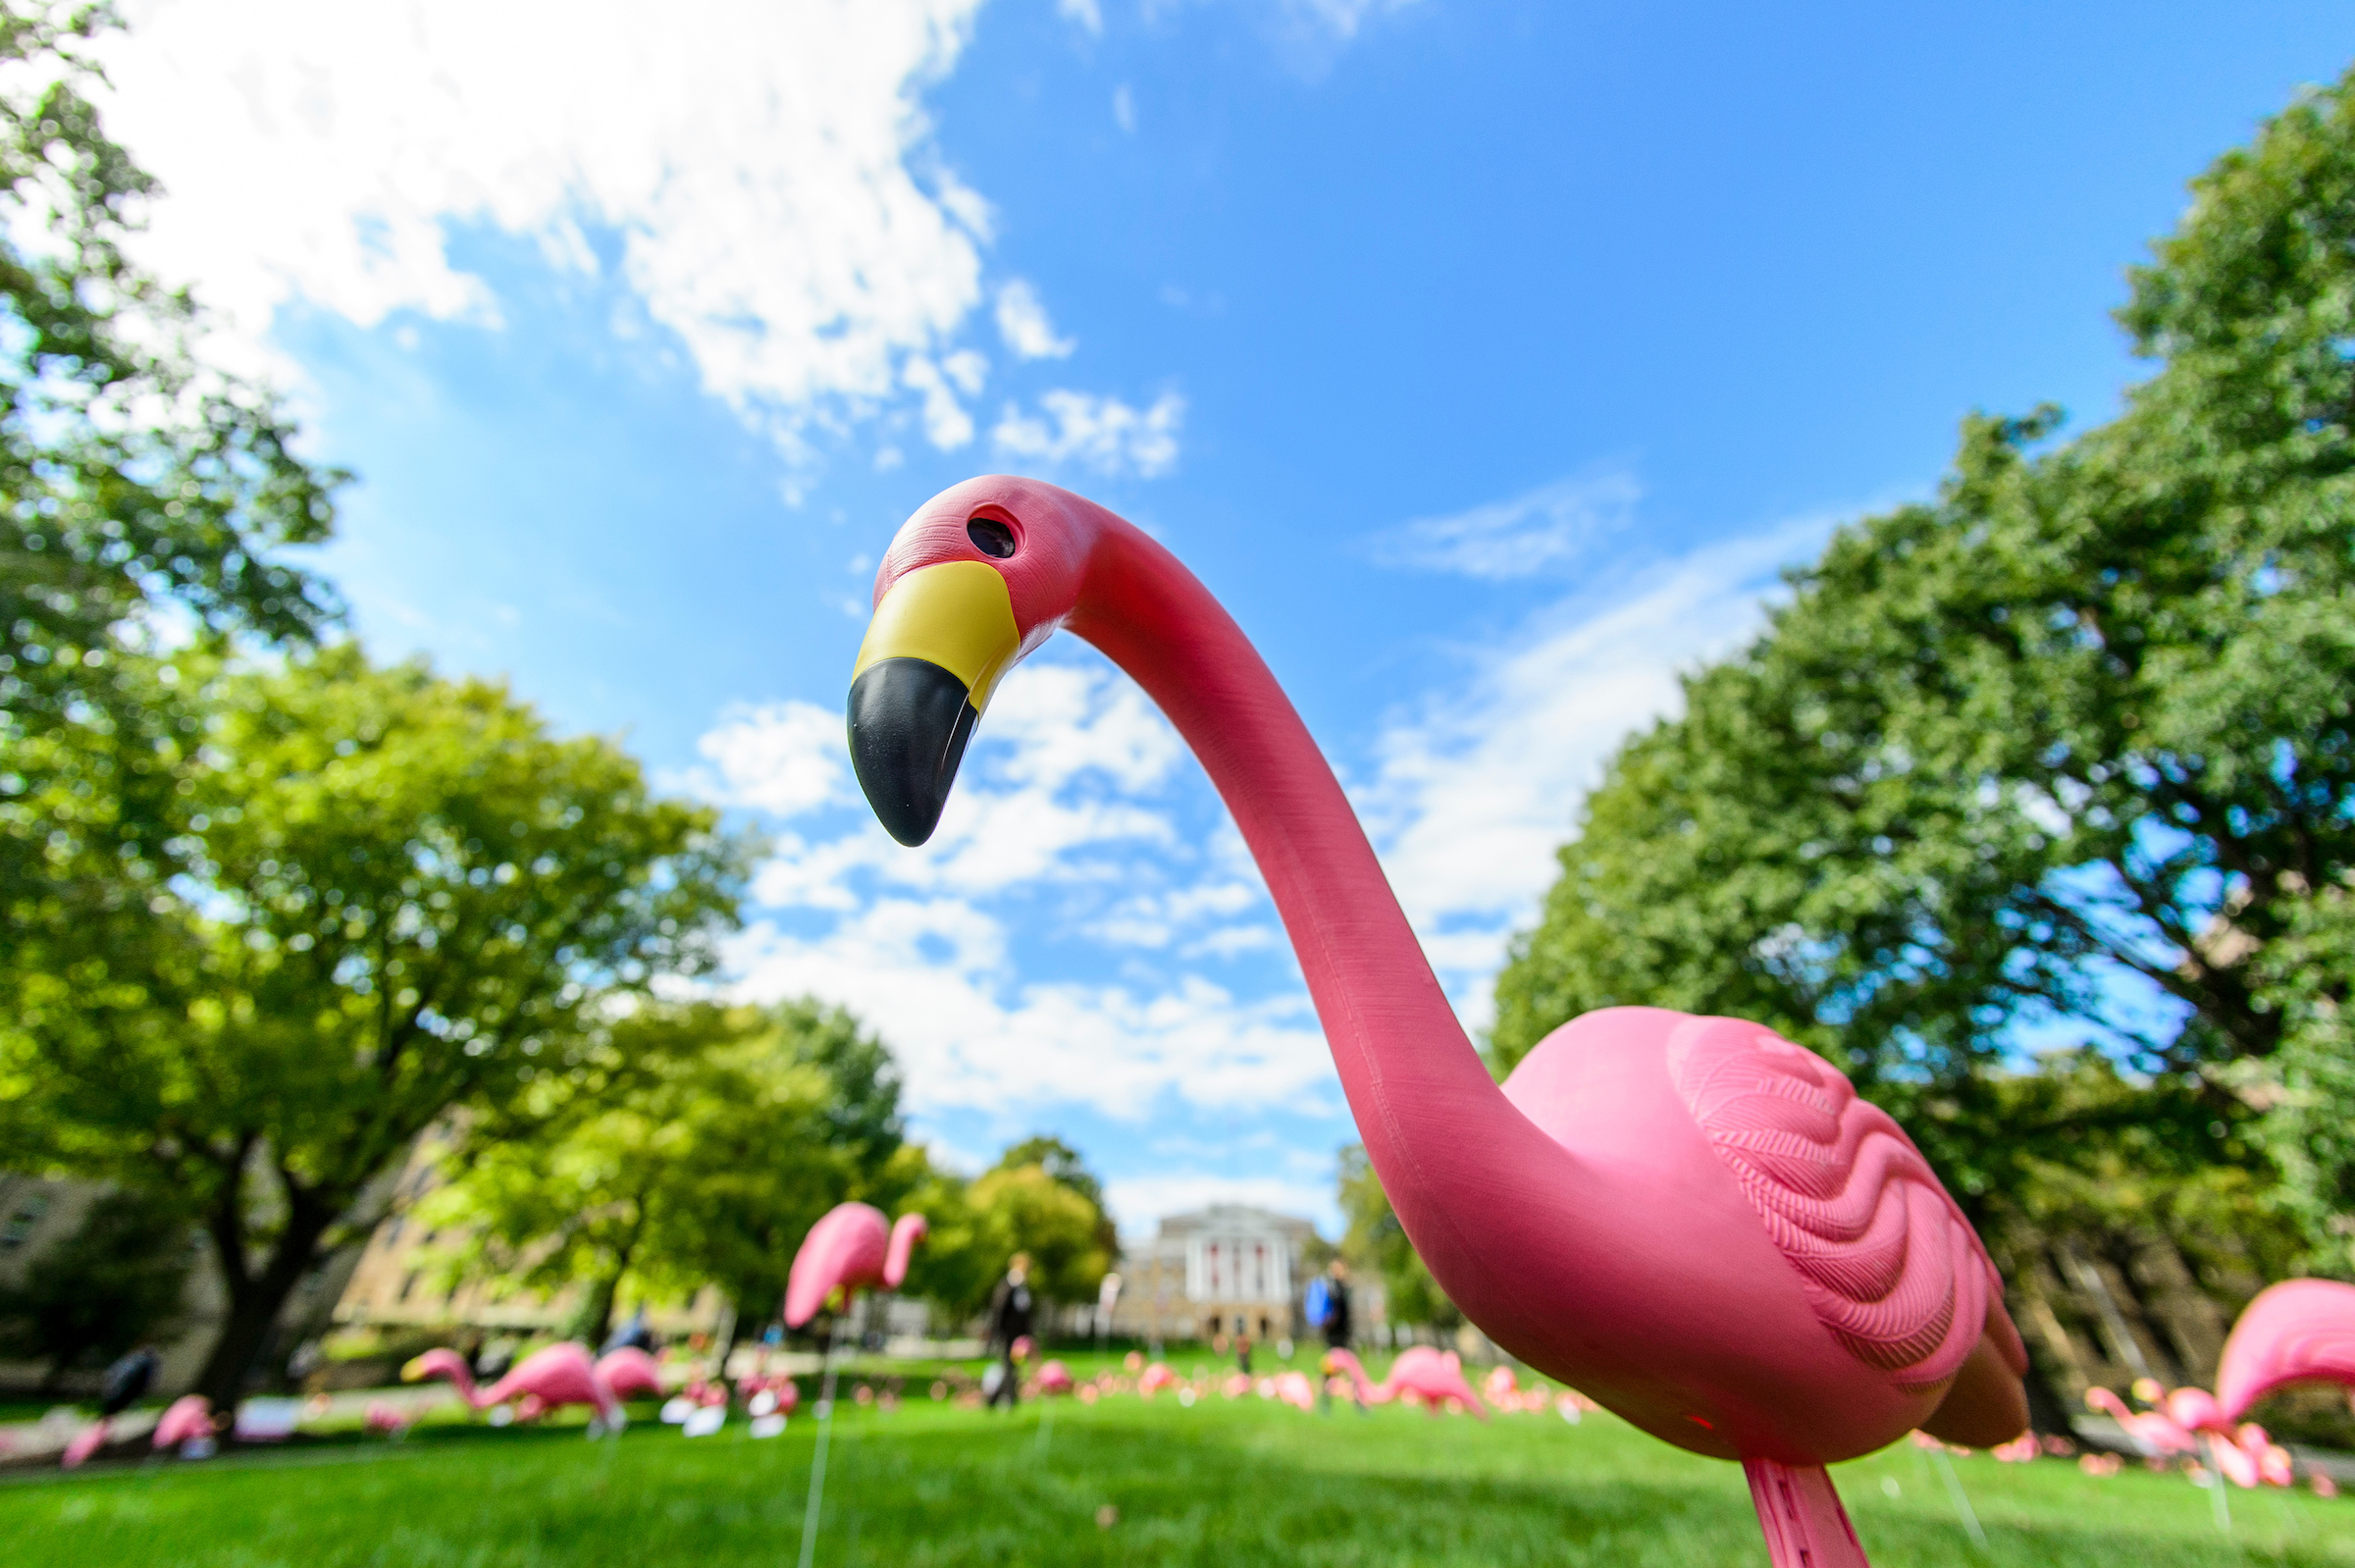 Pink flamingo in front of bascom